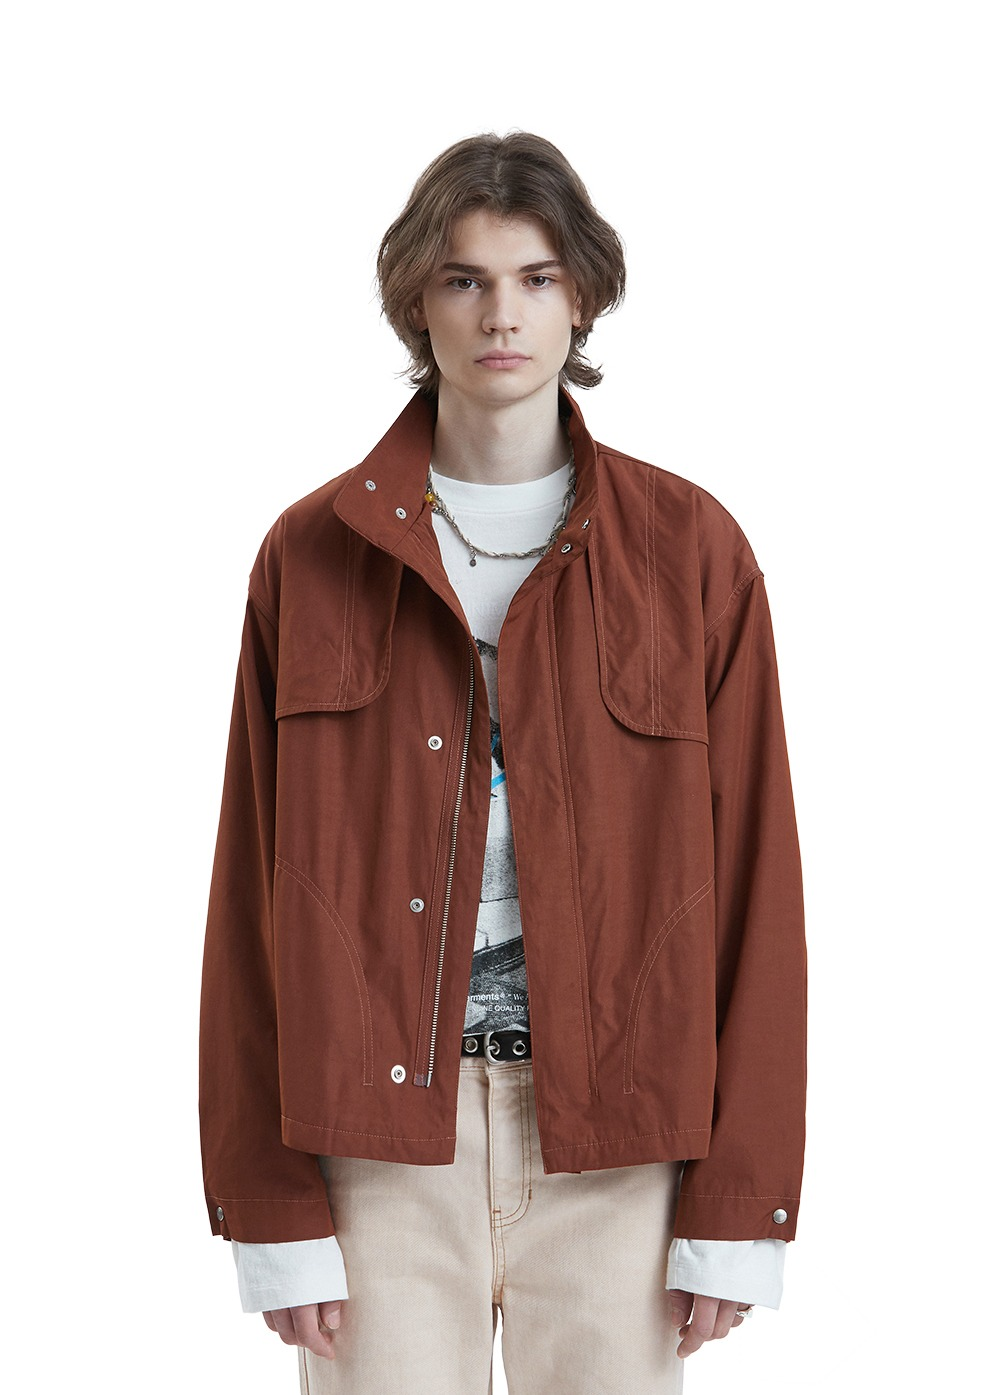 LIFUL CONTRAST STITCH FLAP JACKET red brown